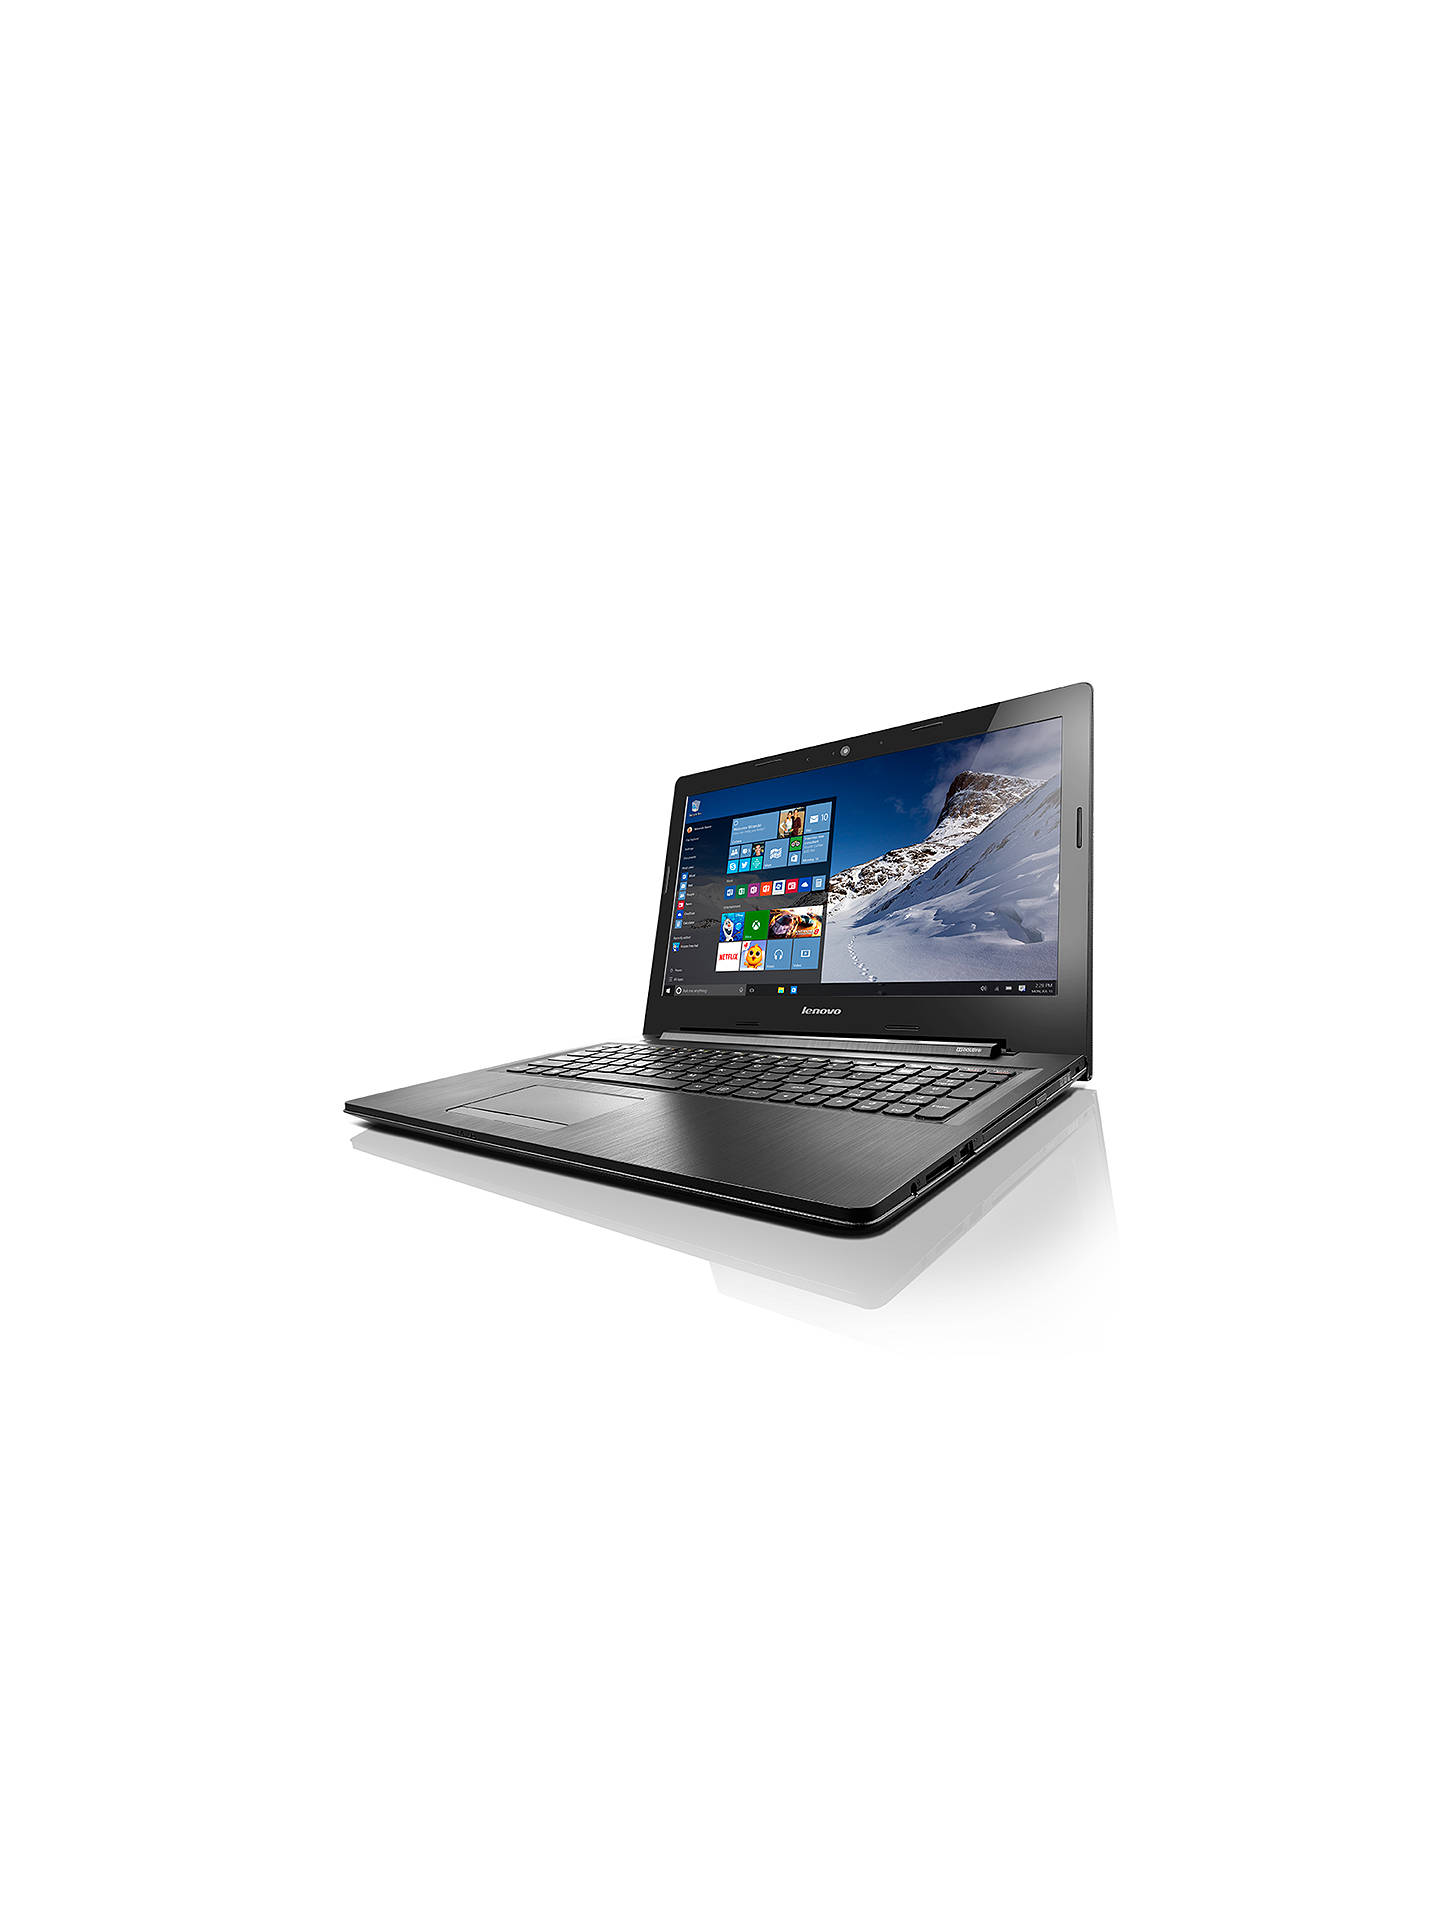 "Lenovo G51 35 Laptop 8GB RAM 1TB 15 6"" Black is no longer available online"